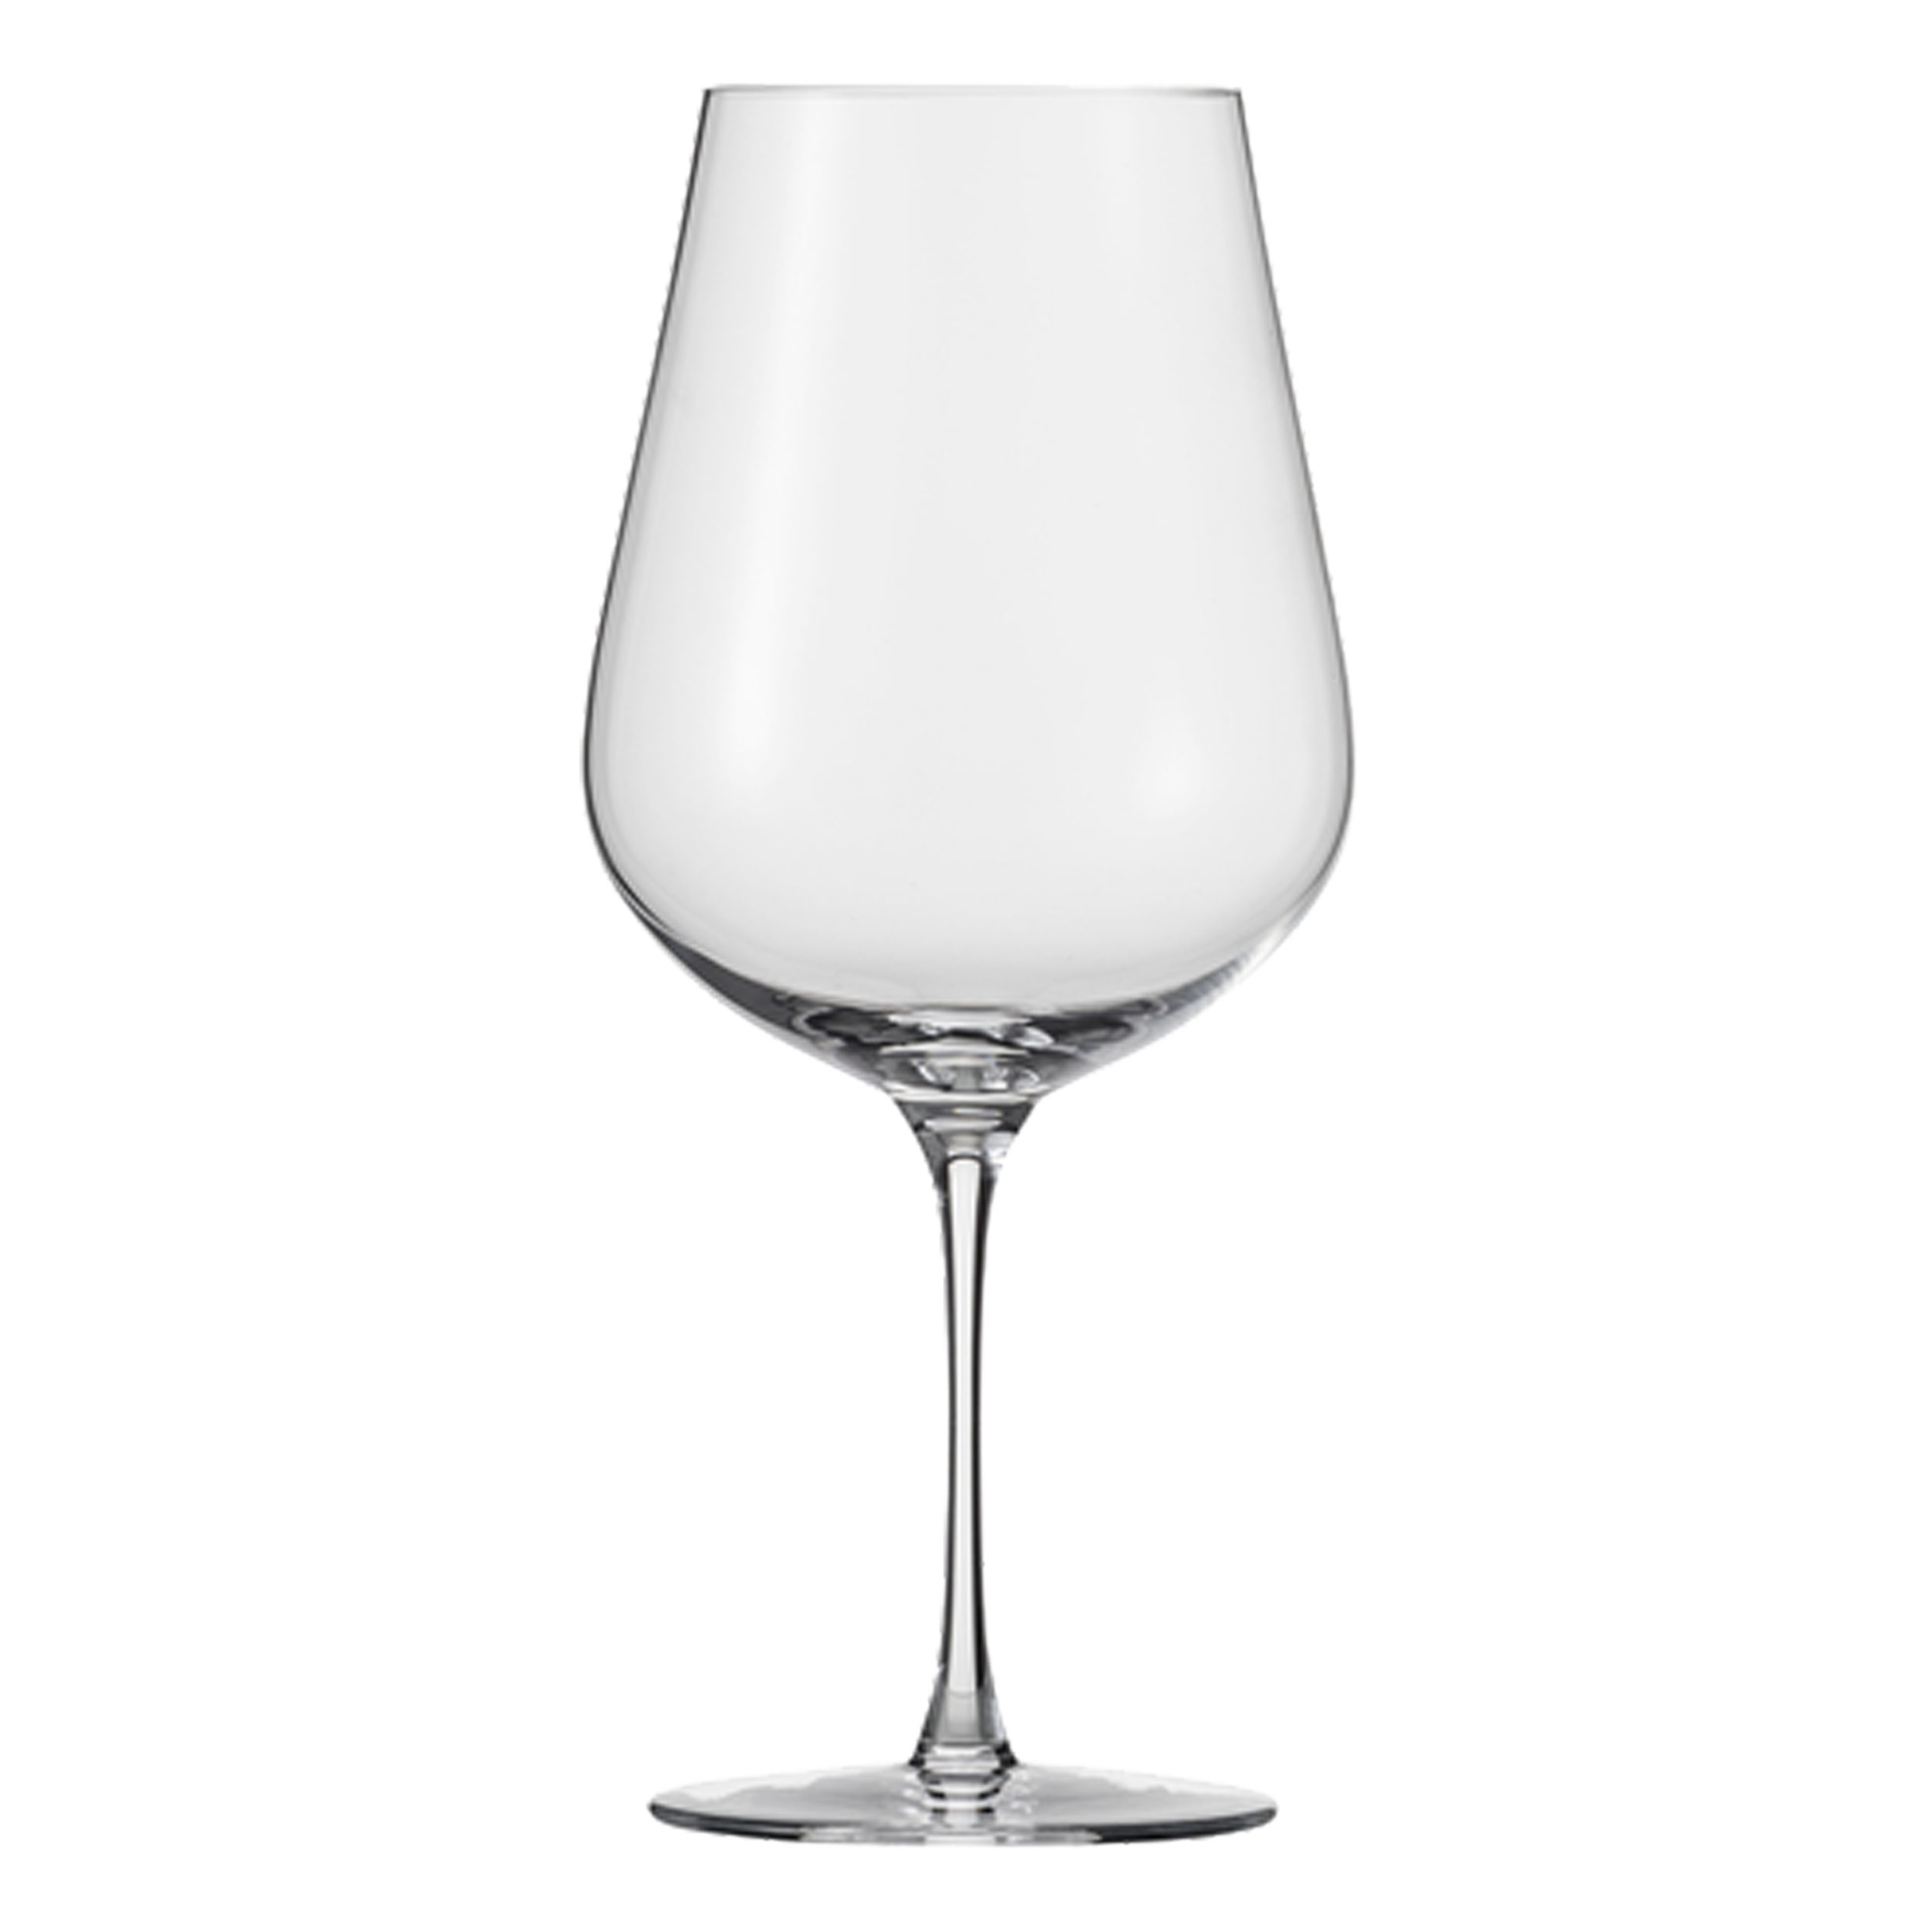 Weinkelch Glas Schott Zwiesel Air Red Wine 1 Set Of 6 Wine Glass Wine Cup Glass 625 Ml 119602 At About Tea De Shop